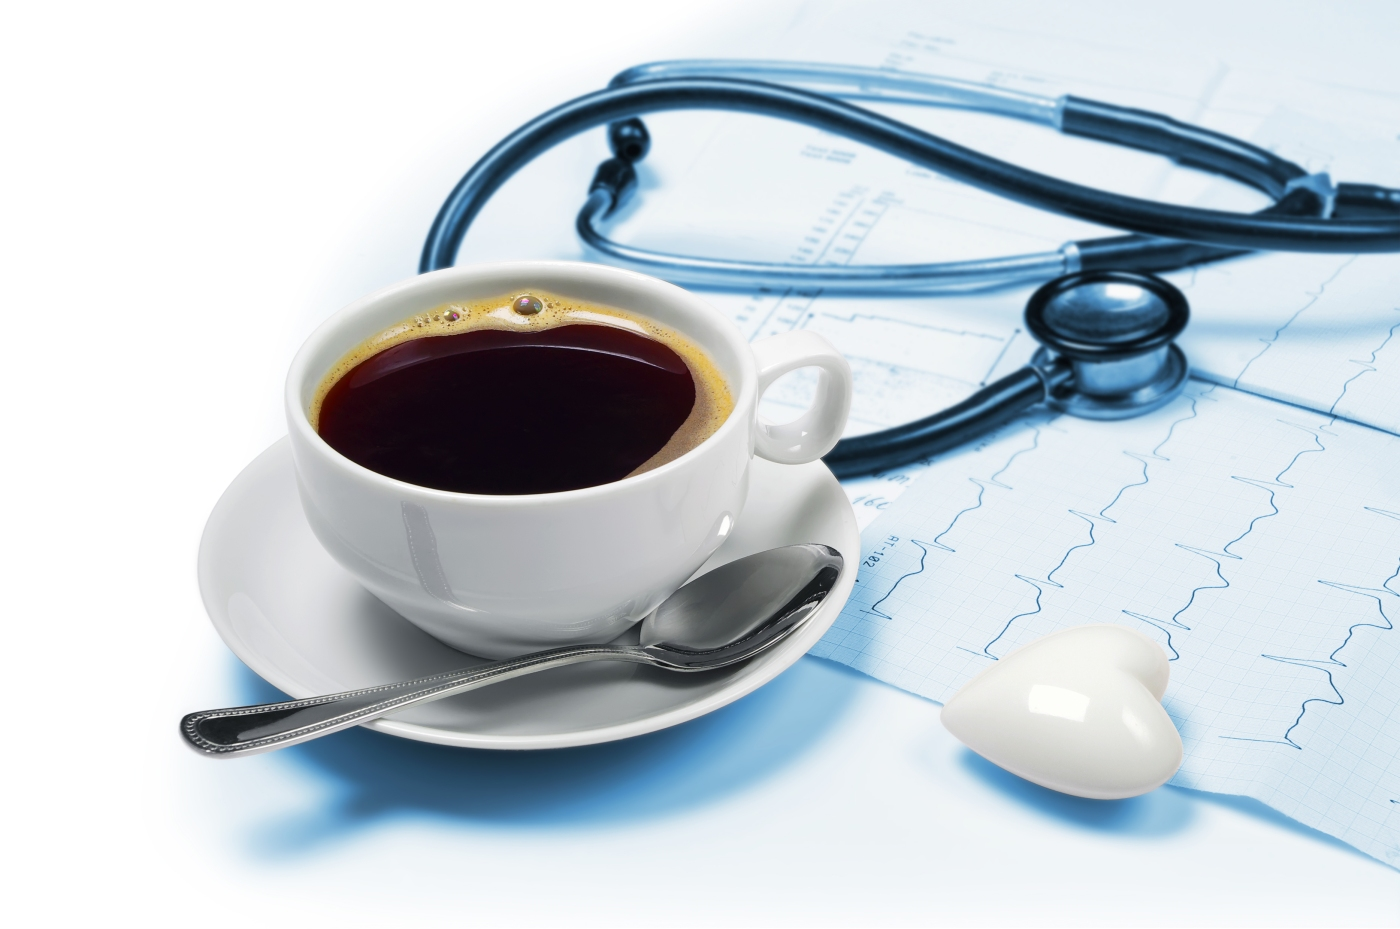 Health and coffee